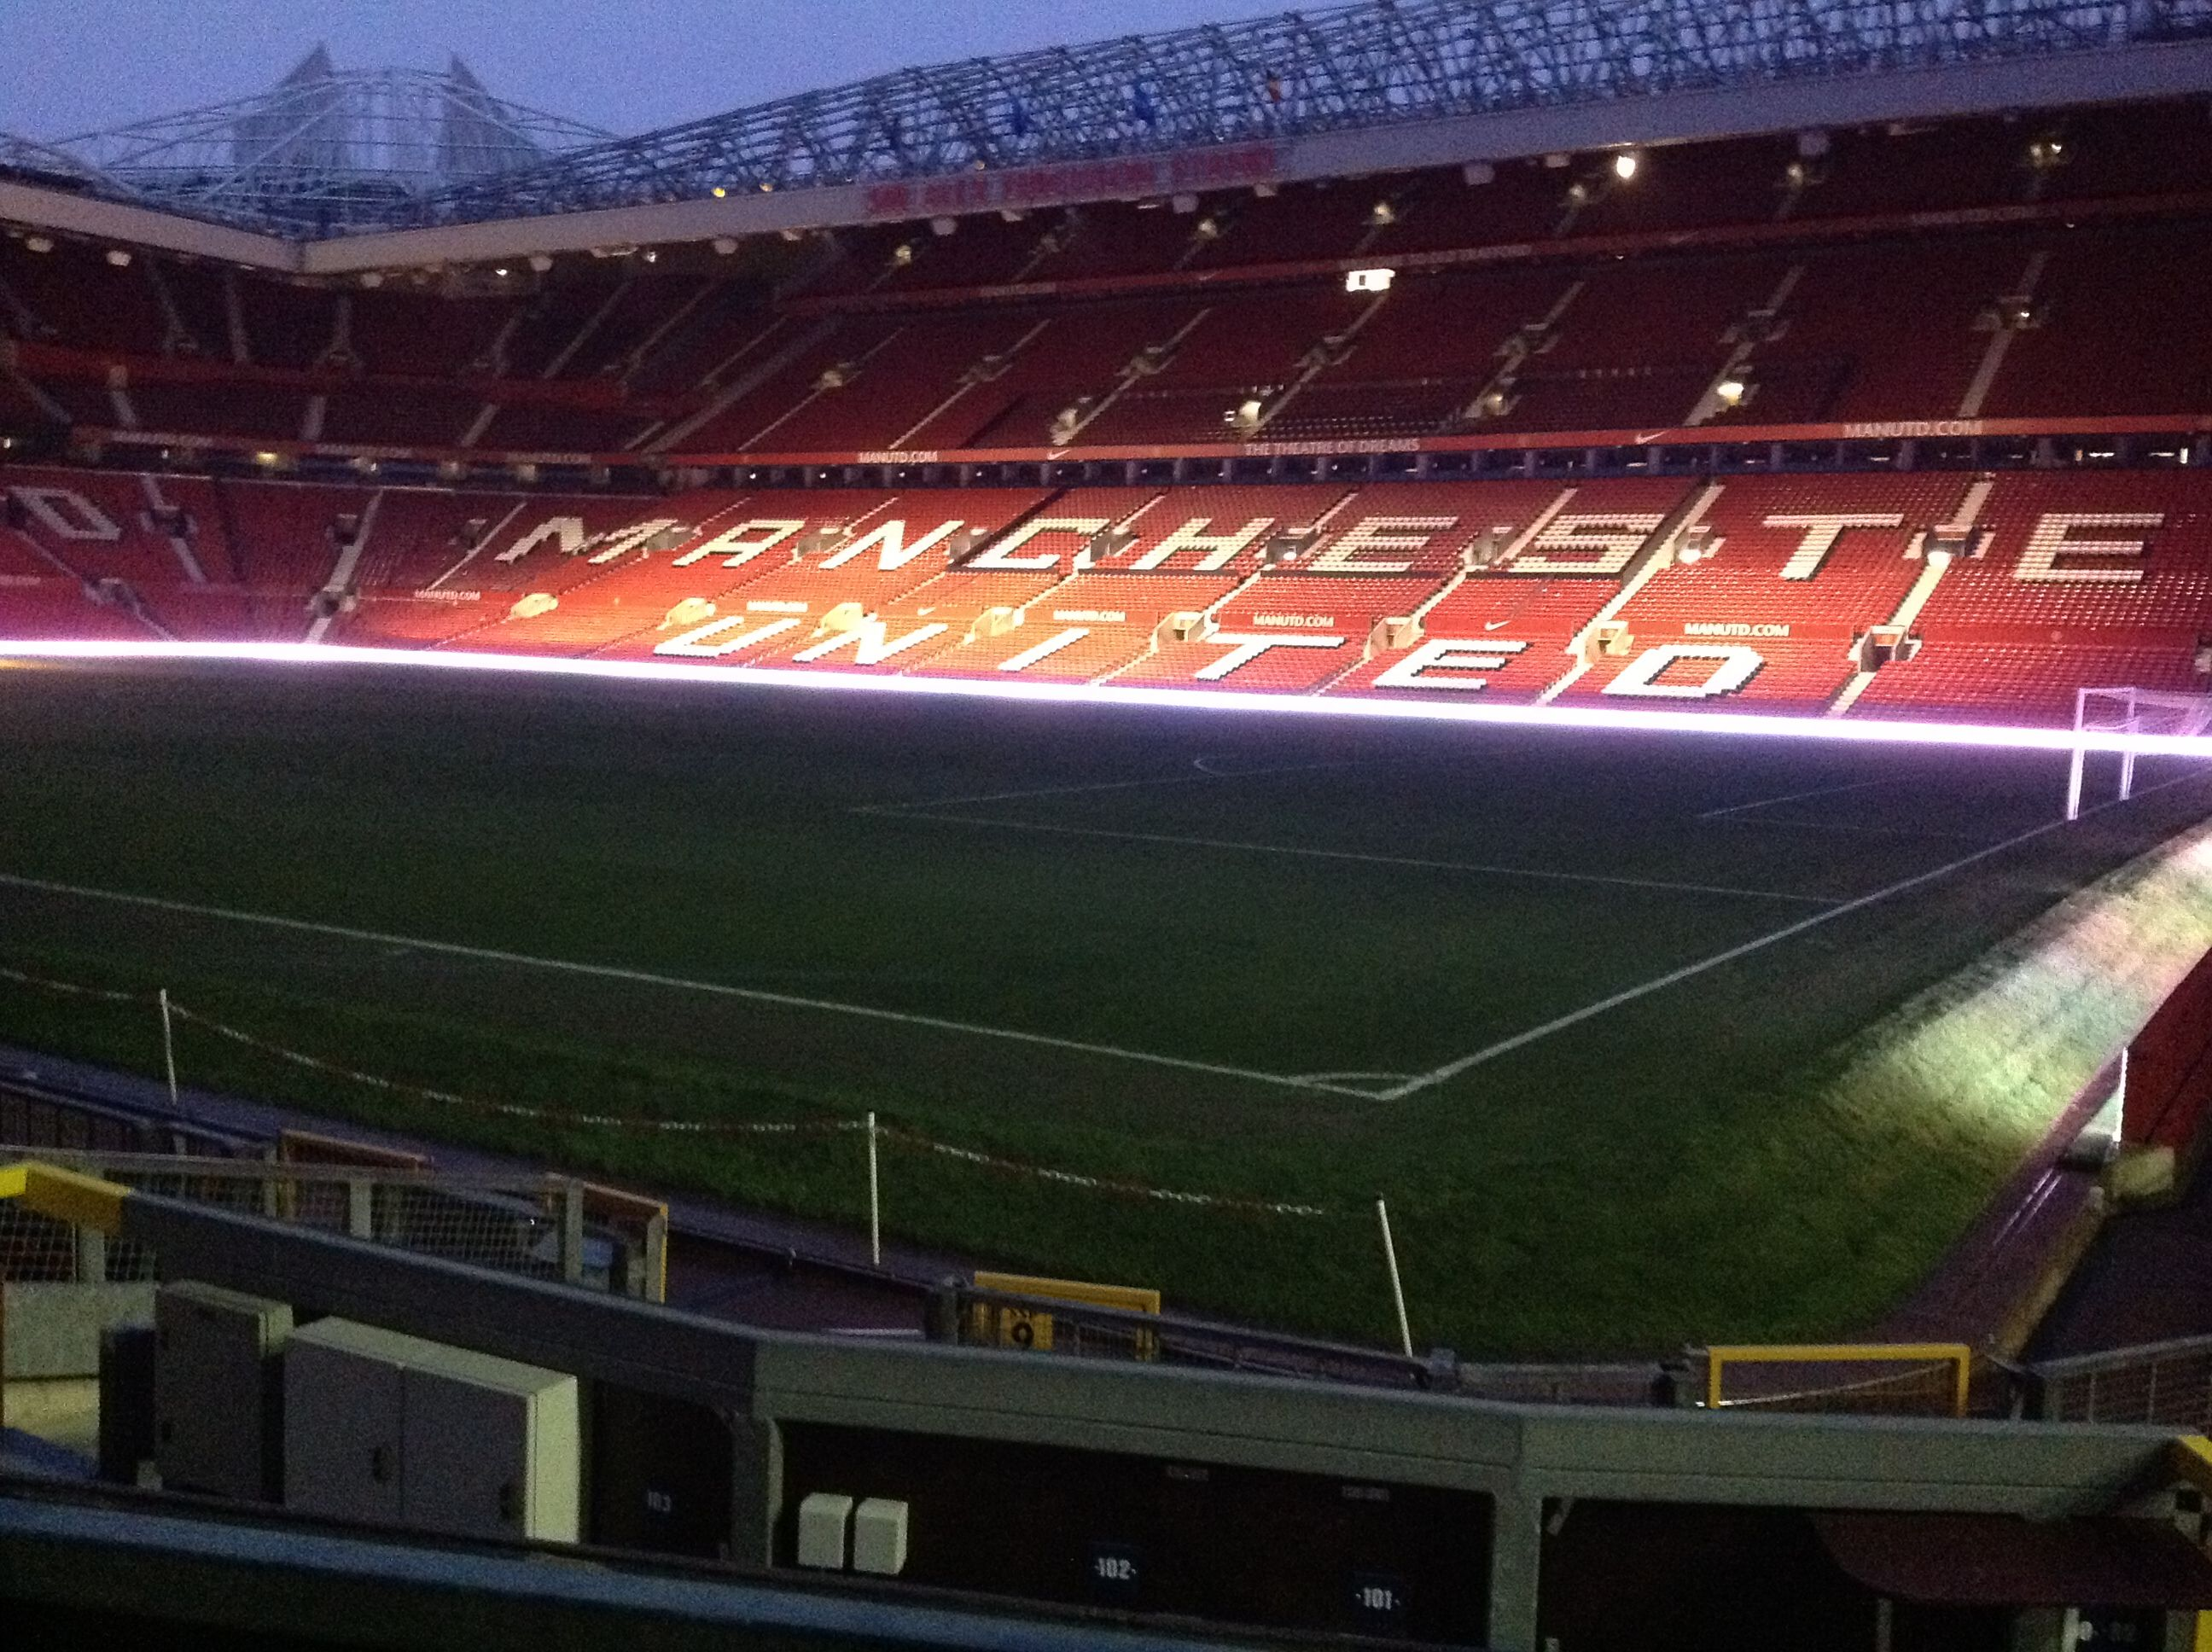 Old Trafford Manchester United Manchester United Trafford Manchester United Football